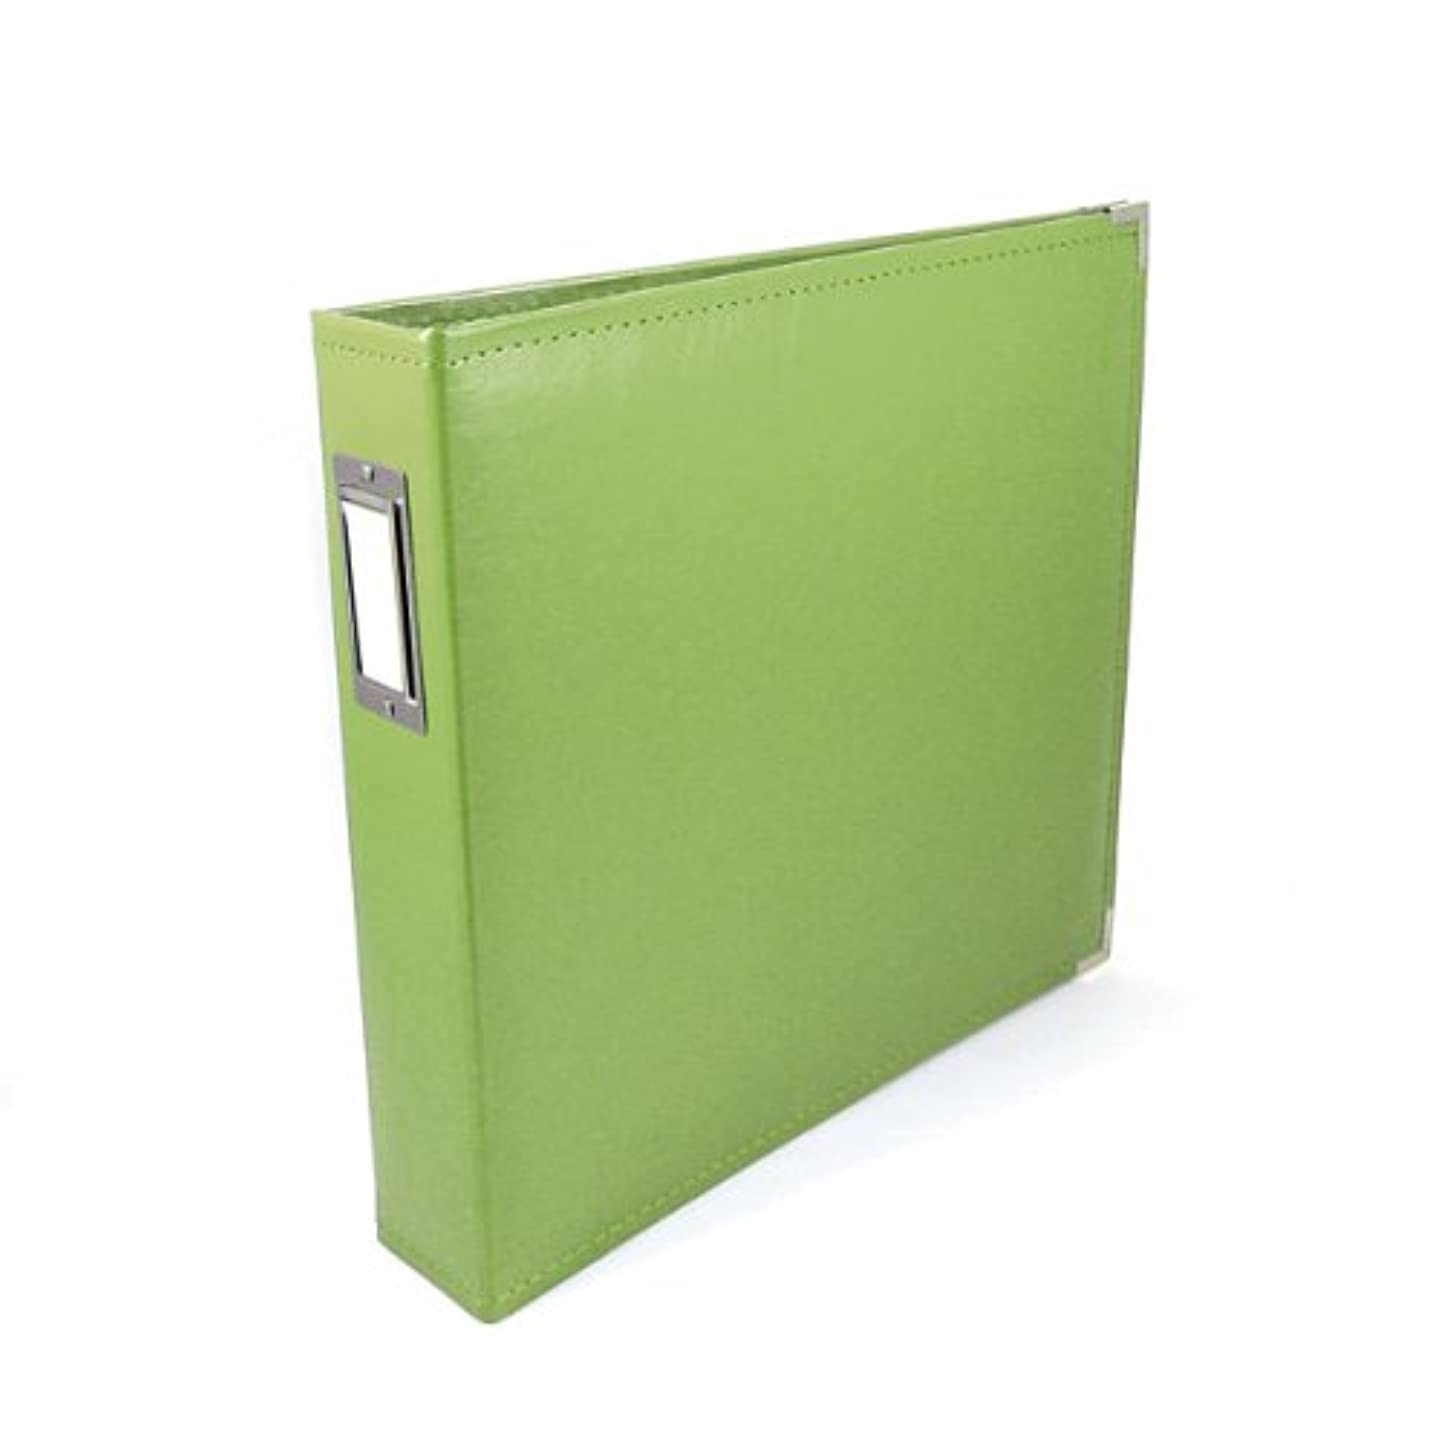 12 x 12-inch Classic Leather 3-Ring Album by We R Memory Keepers | Kiwi, includes 5 page protectors